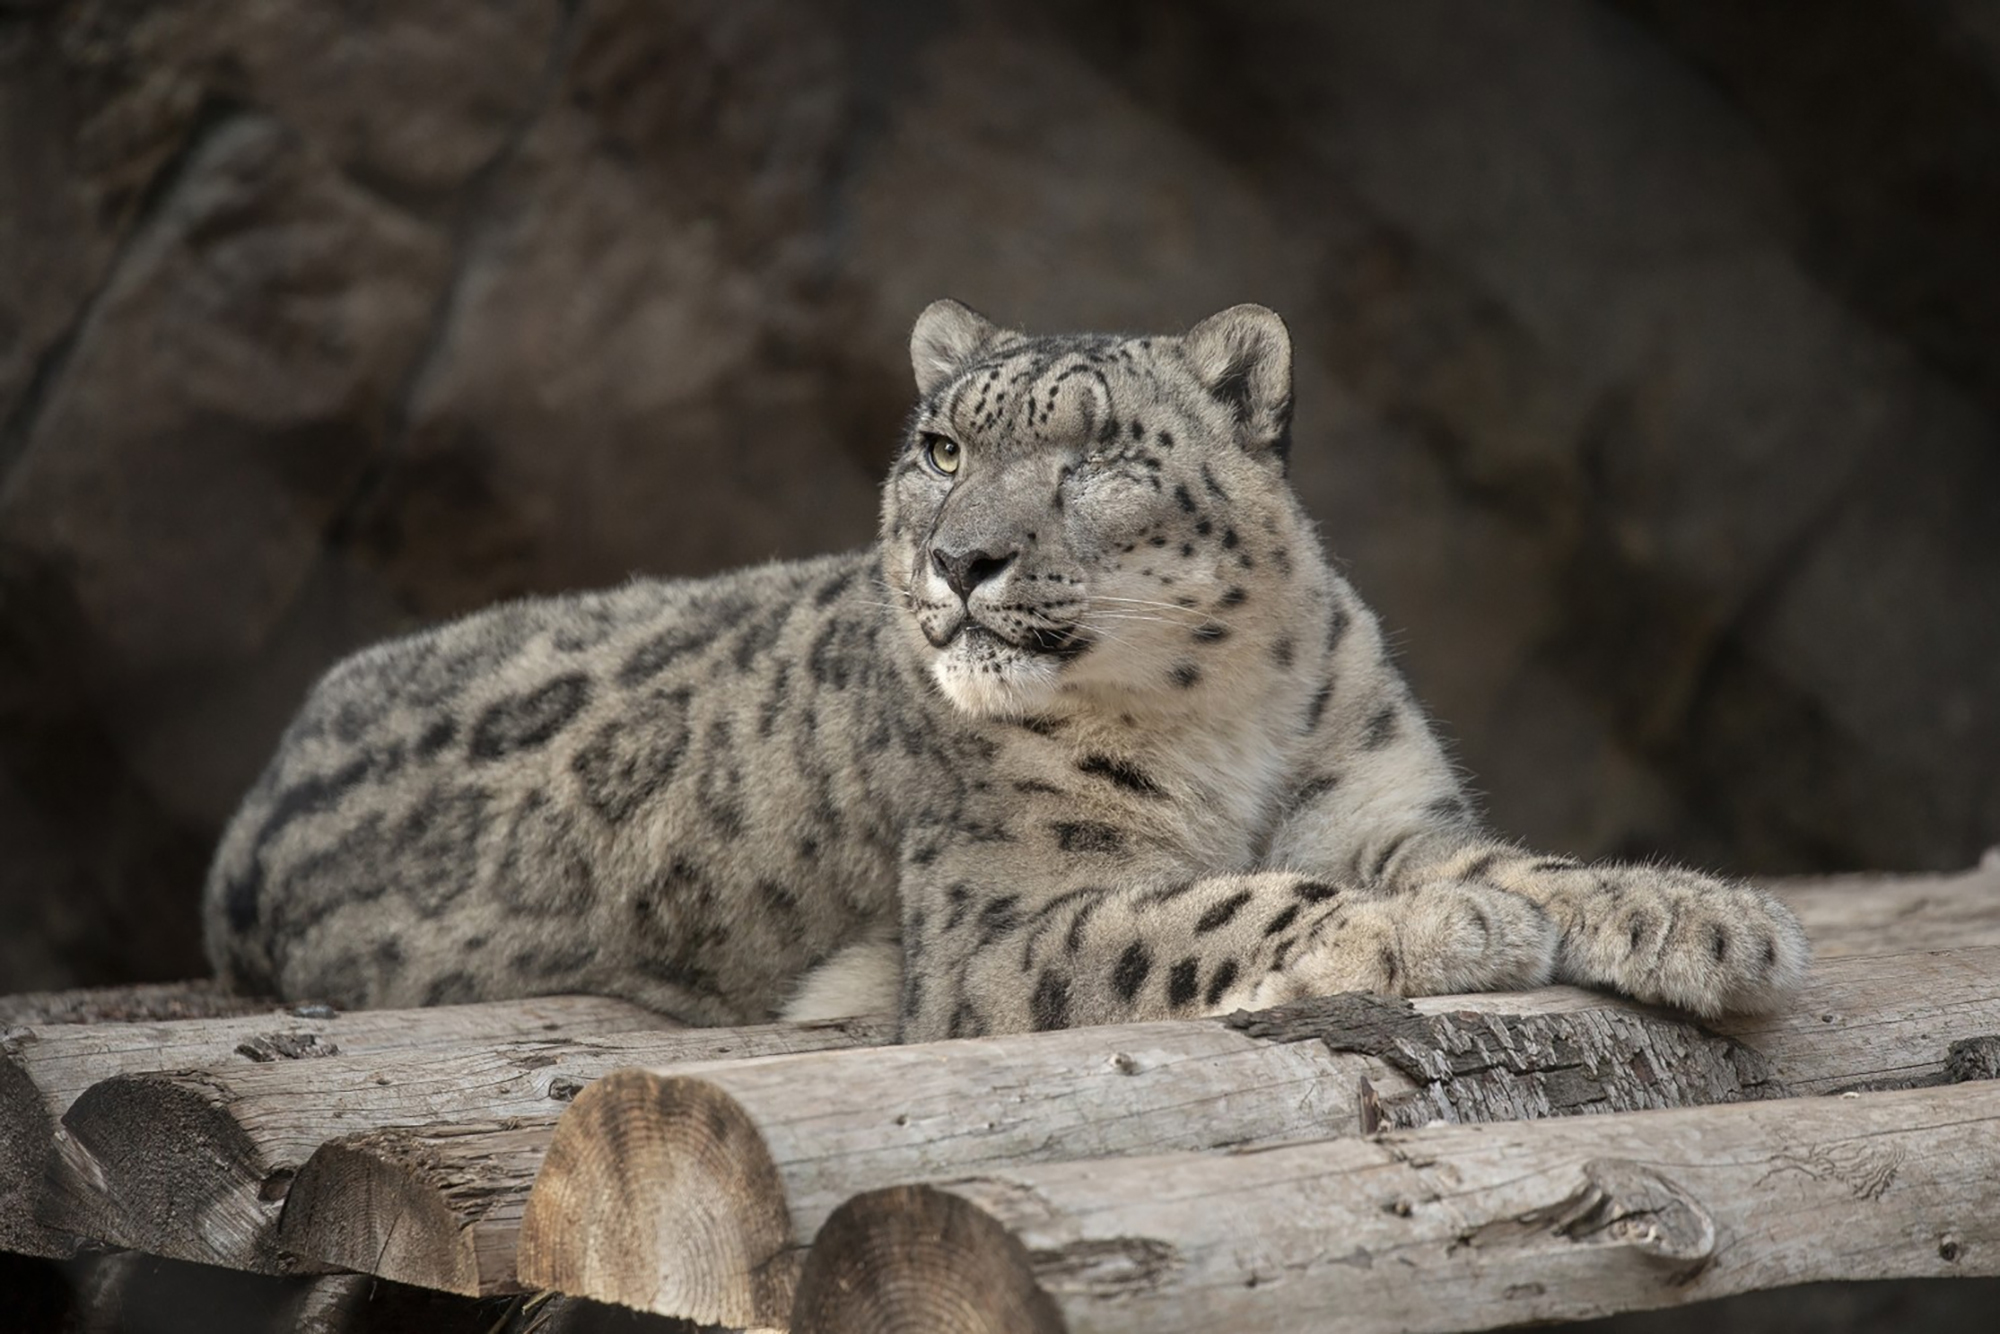 In this Oct. 10. 2019, photo, provided by the San Diego Zoo Wildlife Alliance, Ramil, a male snow leopard, rests at the San Diego Zoo in San Diego. Ramil was tested for the coronavirus after caretakers noticed that he had a cough and runny nose on Thursday, July 22, 2021. The animal's stool sample was tested by the zoo staff and at a state-level lab, both of which confirmed the presence of the coronavirus, the zoo said in a statement the following day. It's unclear how Ramil got infected. In 2017, veterinarians removed his left eye due to a chronic condition he already had when he arrived at the zoo. (Tammy Spratt/San Diego Zoo Wildlife Alliance via AP)